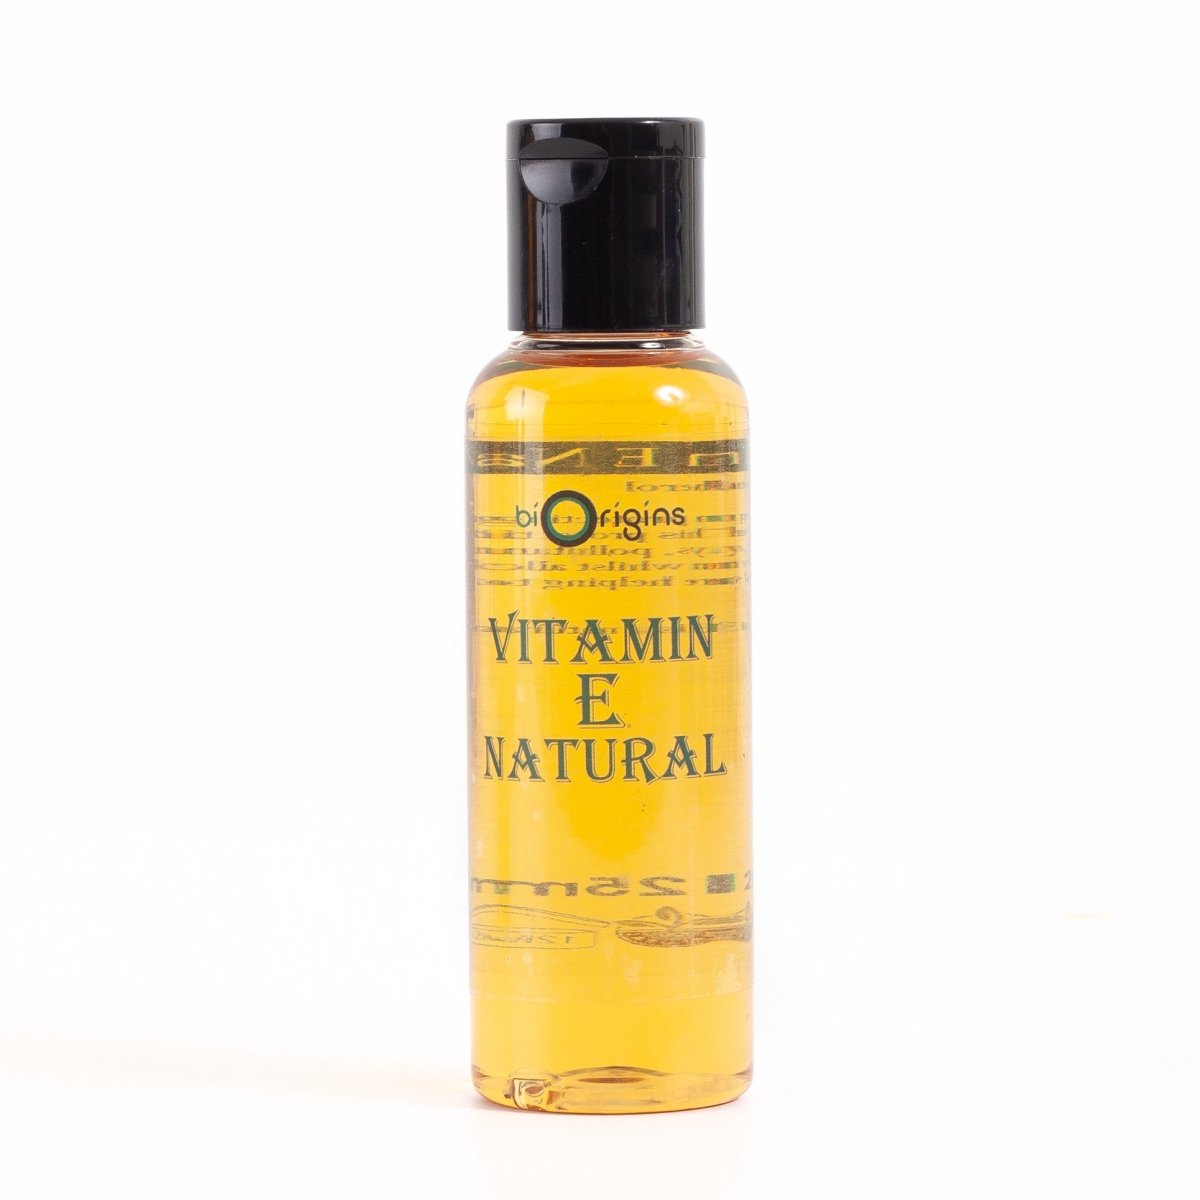 Vitamin E Natural - Vitamins - Mystic Moments UK